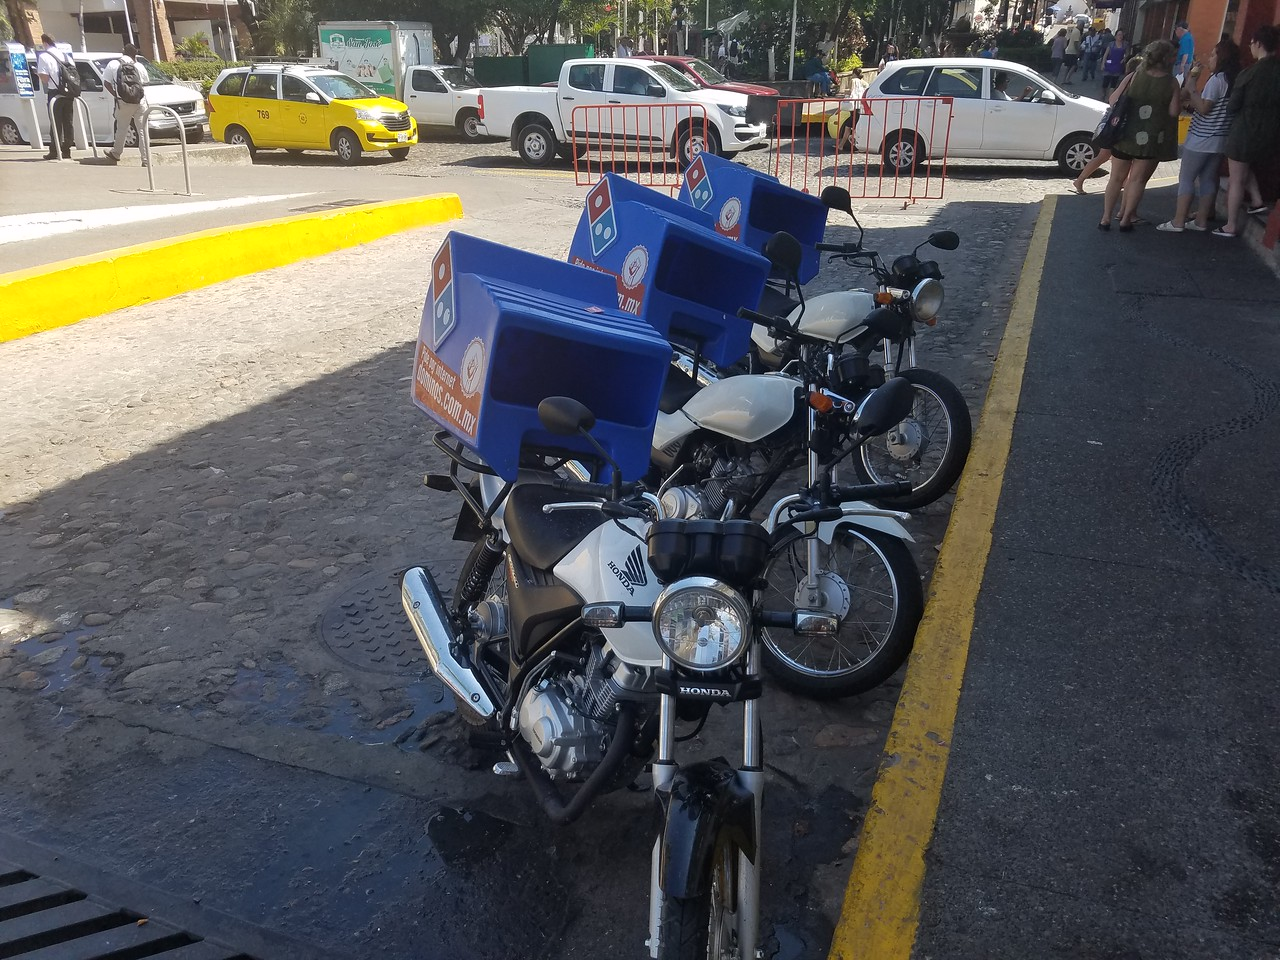 Pizza delivery in Puerto Vallarta